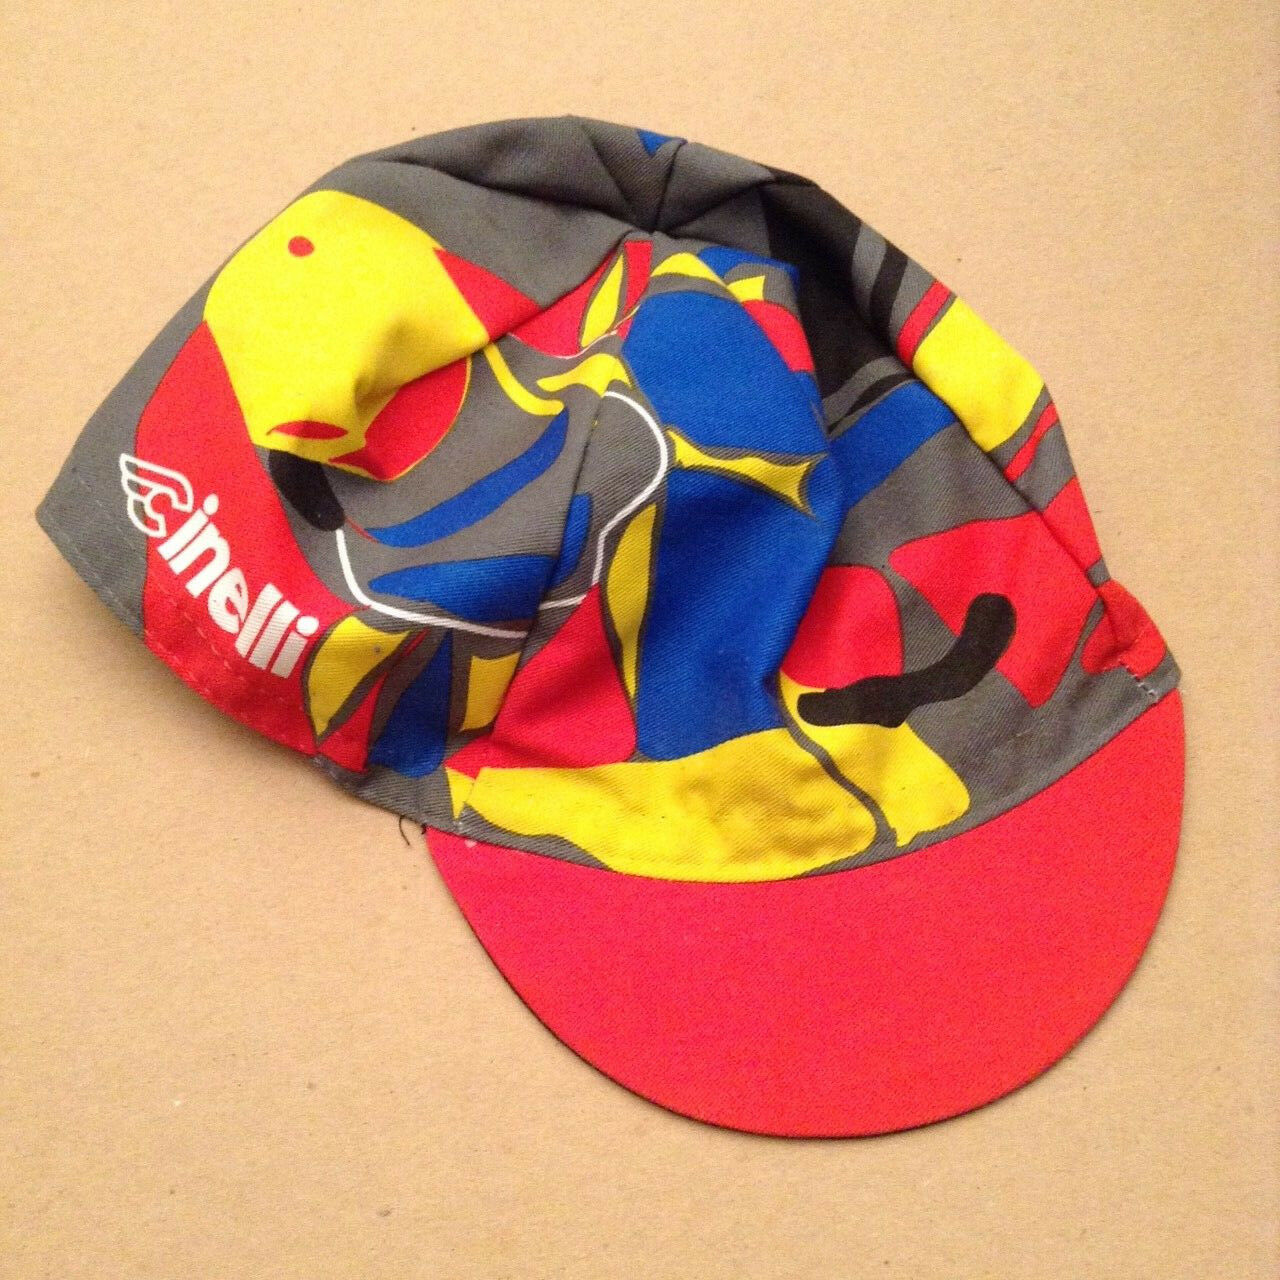 Cinelli Bicycle Film Festival 2011 Cycling Cap One size fits most Made in